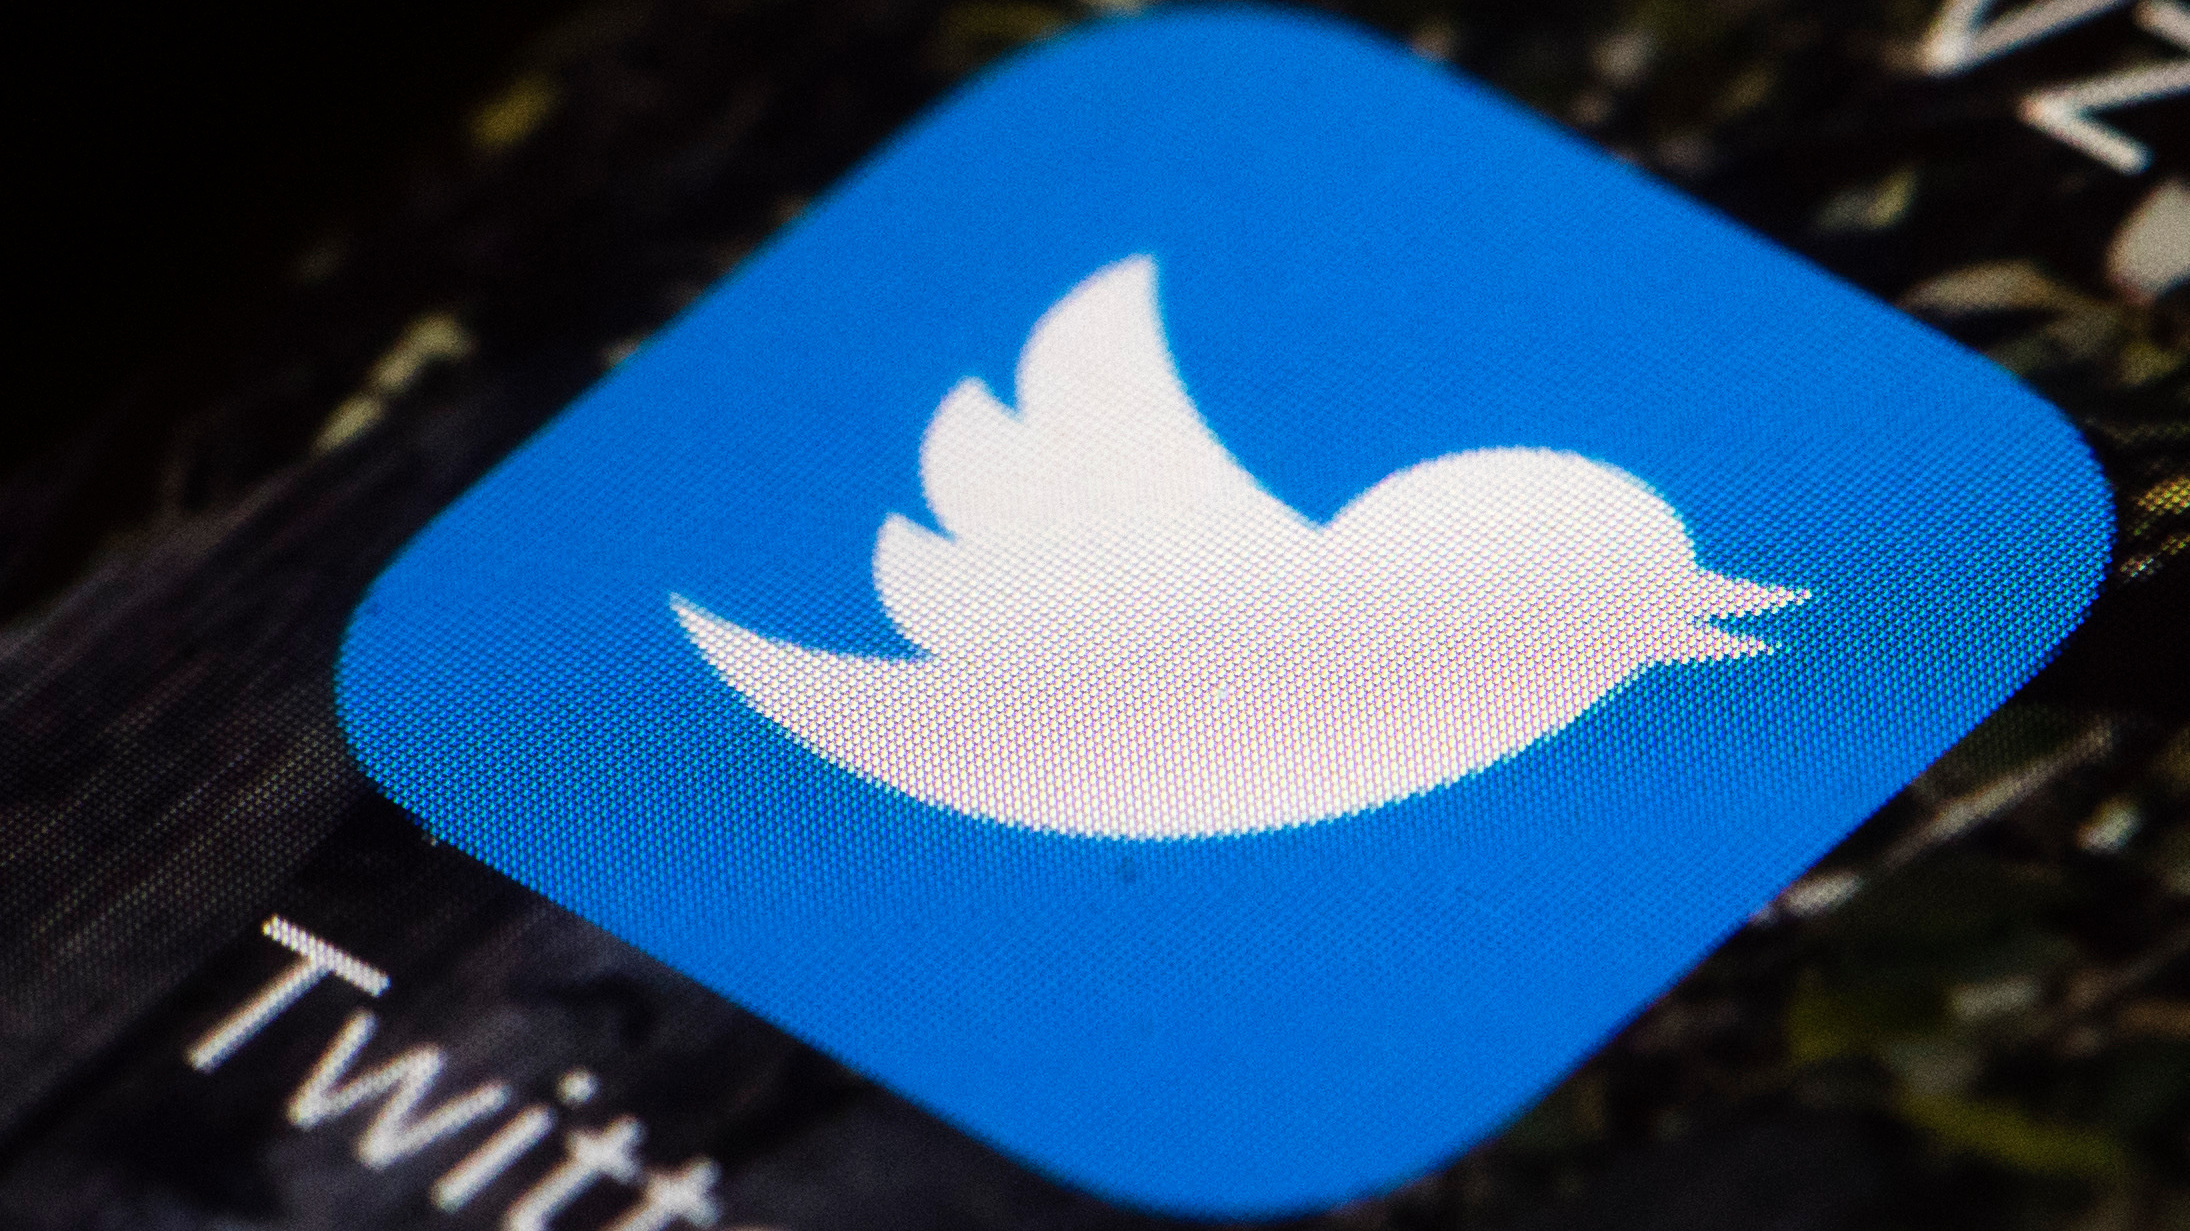 Twitter CEO Says Users Could Get a Feature to 'Clarify' Their Bad Tweets